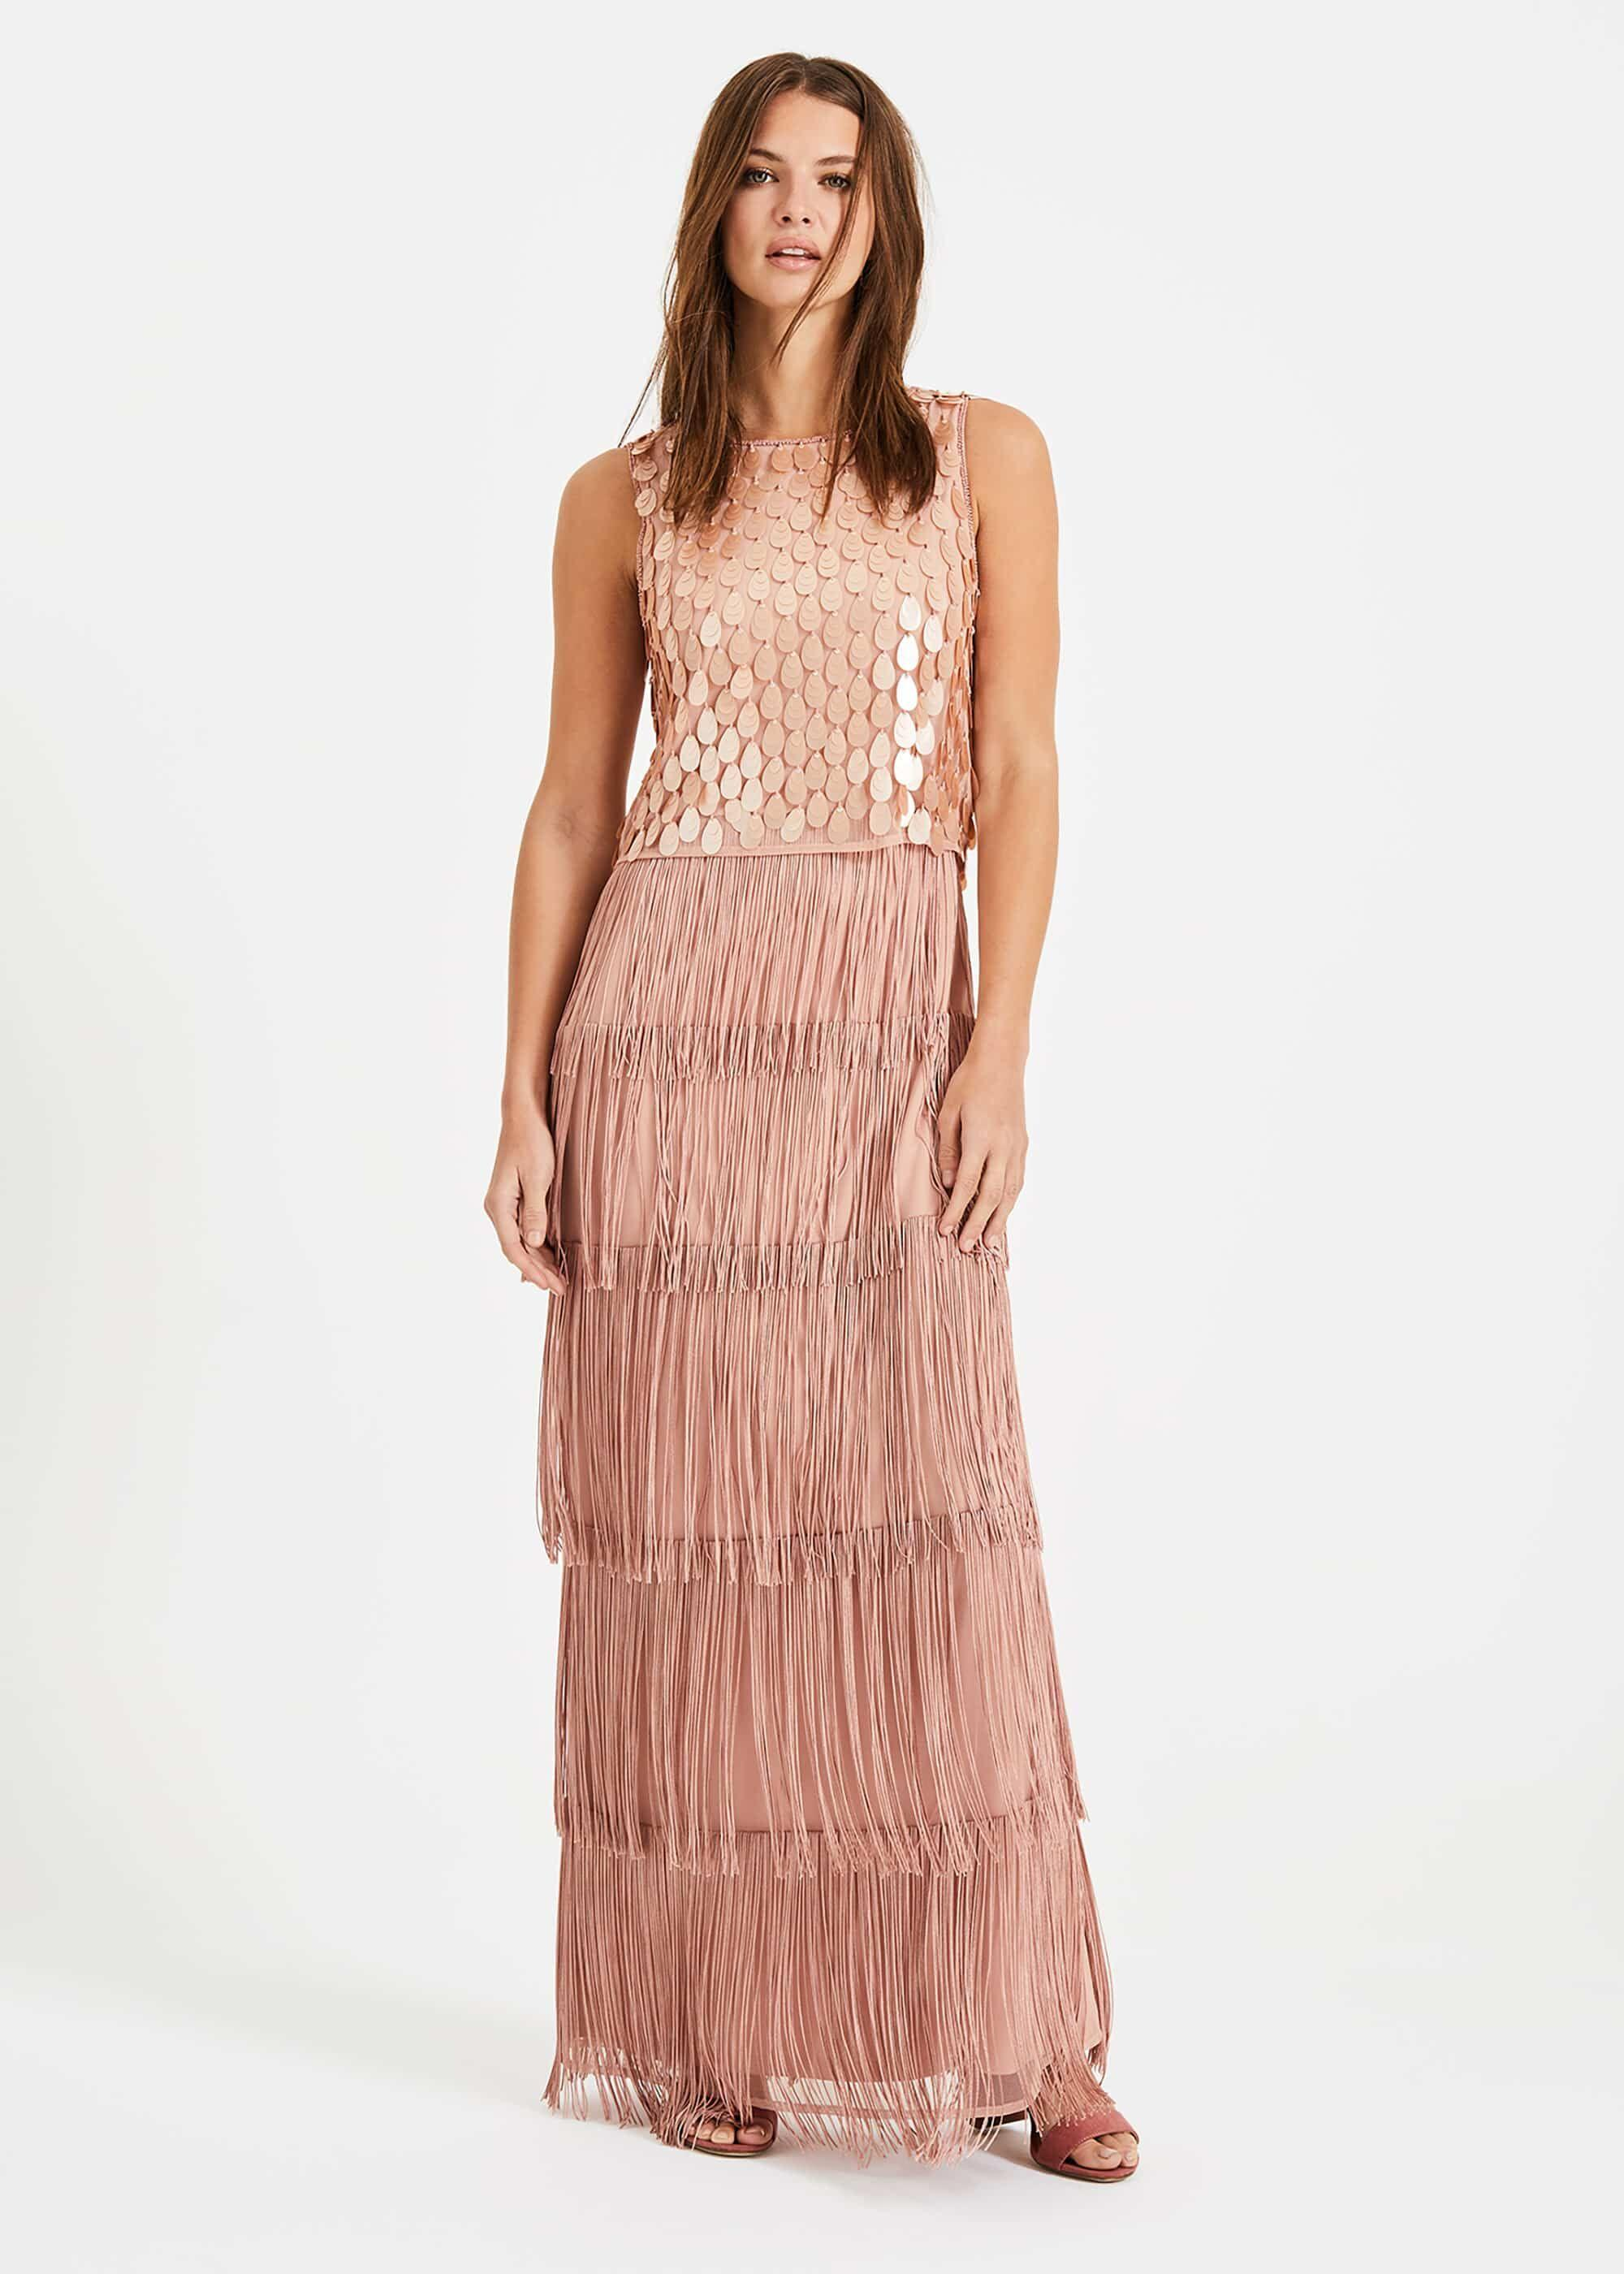 8e75dbb15a0f Phase Eight Pink Amandine Fringe Dress in Pink - Lyst